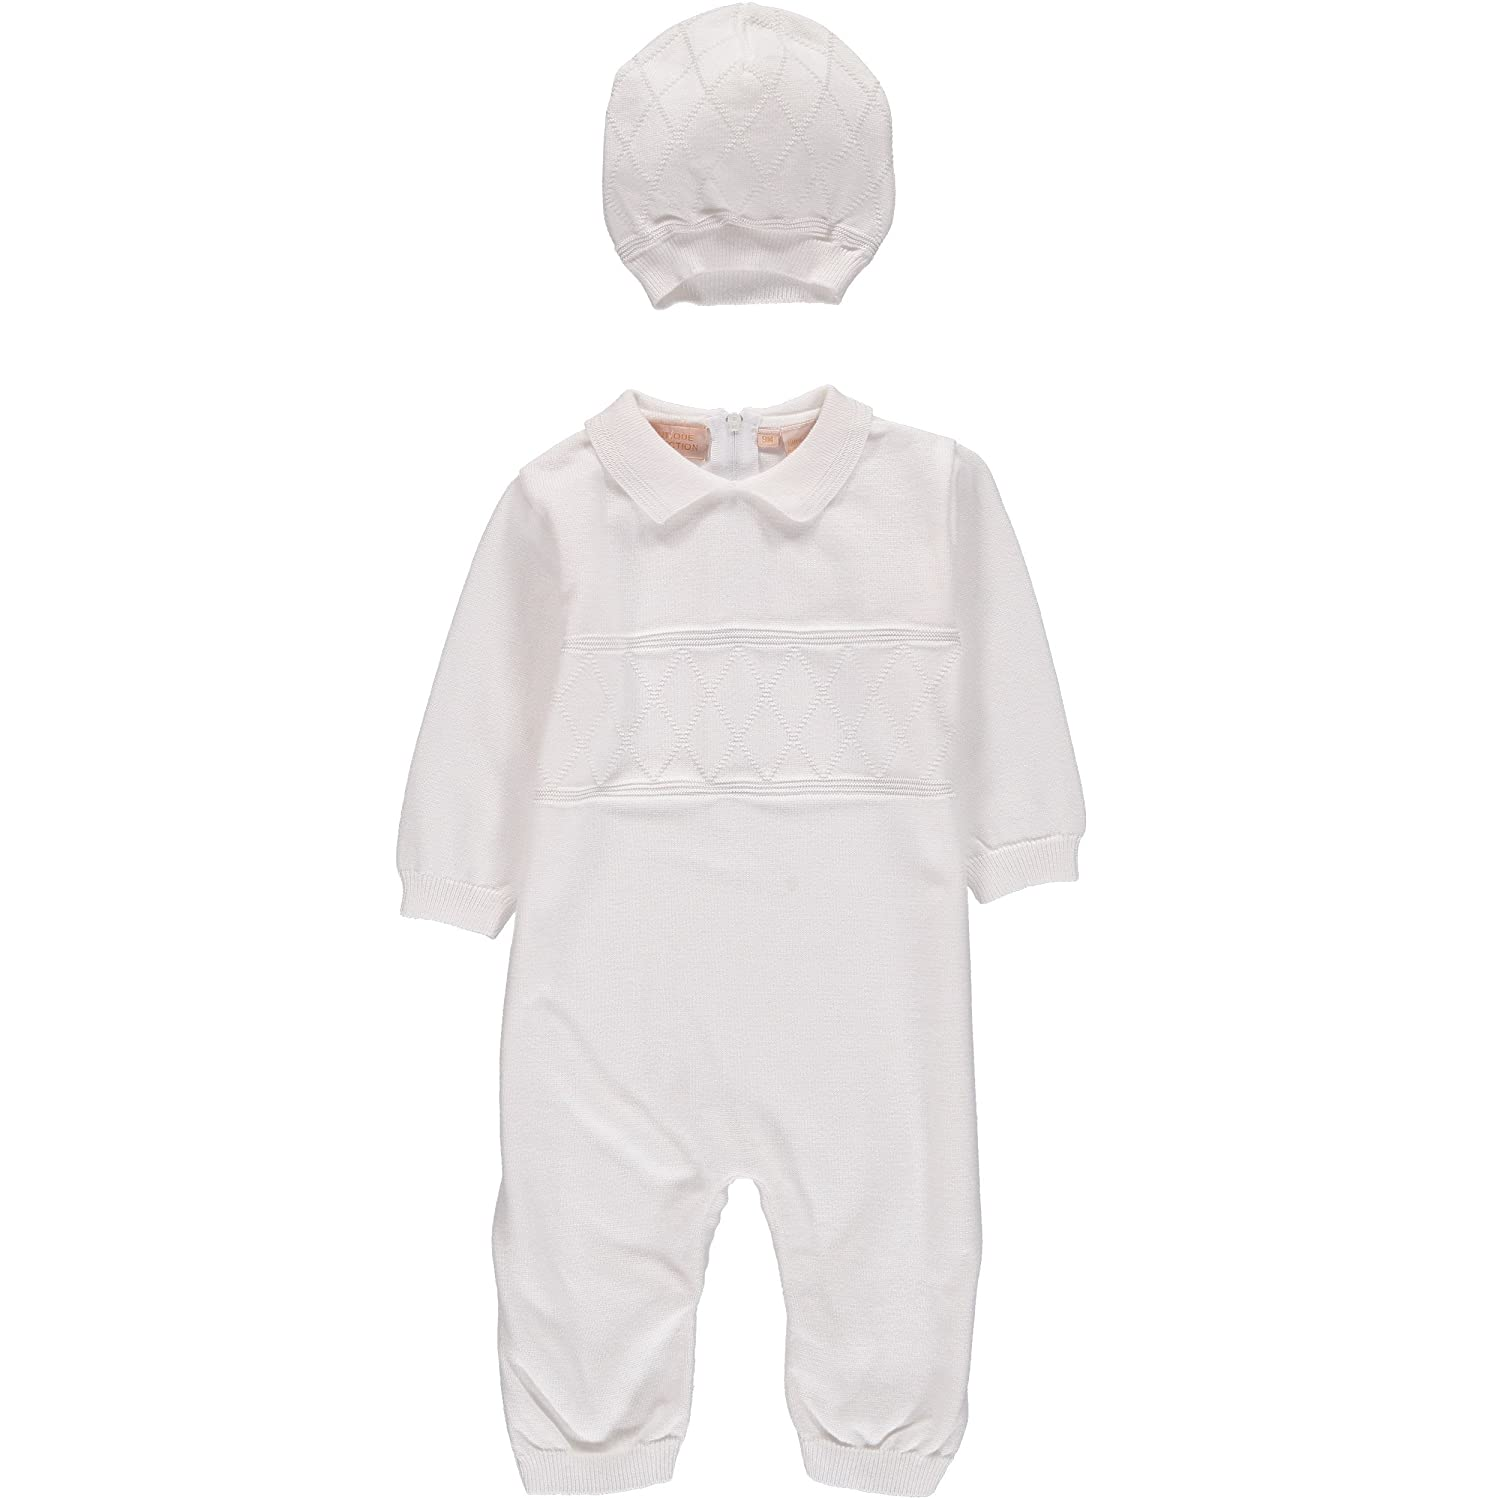 Boutique Collection Baby Boys' Christening Coverall with Diamond Stitching - Includes Hat